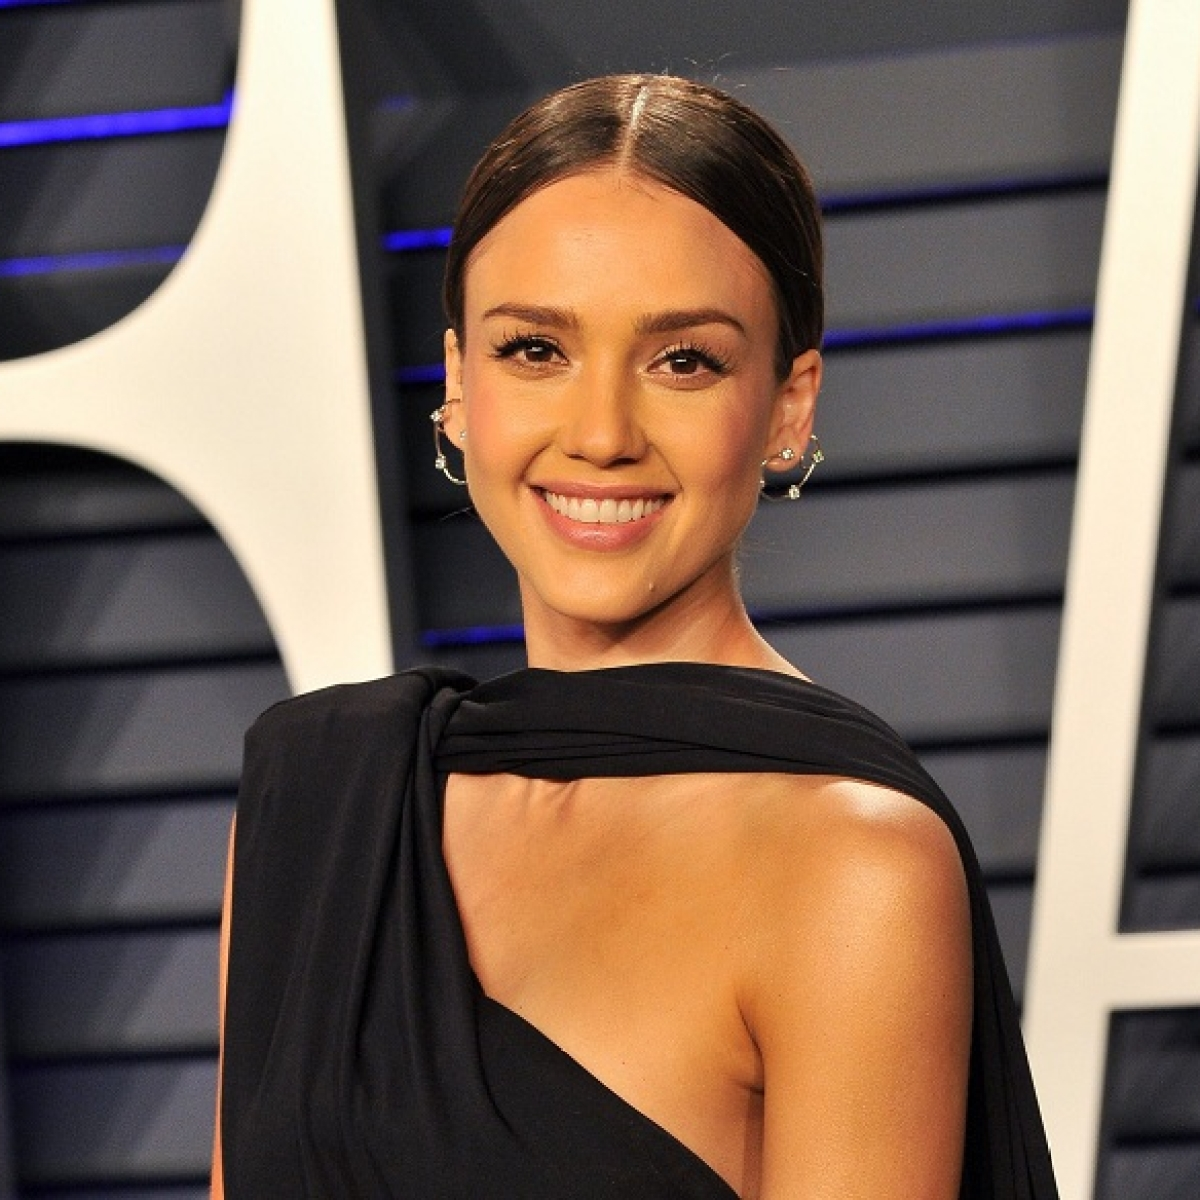 'Post Covid if anybody stays at home it'll probably be the man,' says Jessica Alba